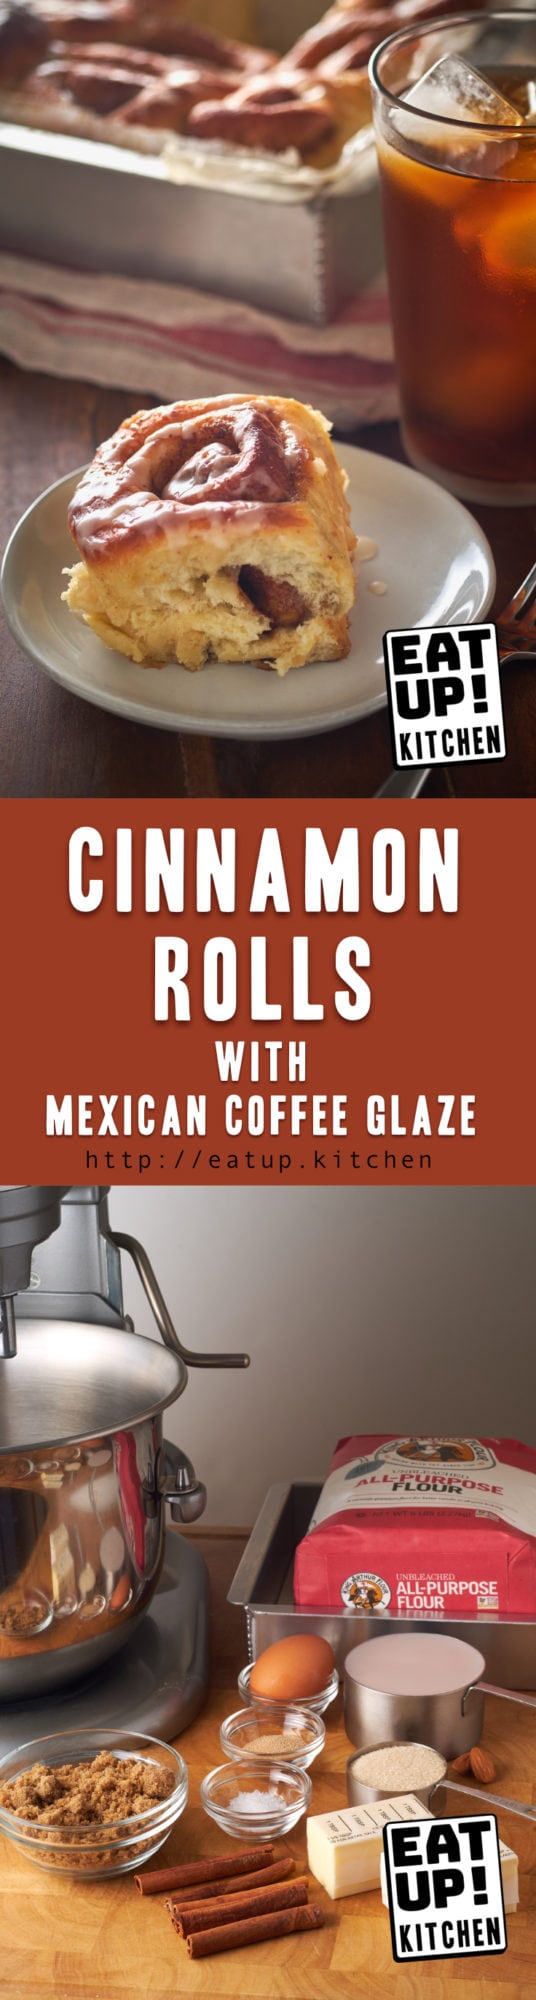 Cinnamon Rolls with Mexican Coffee Glaze